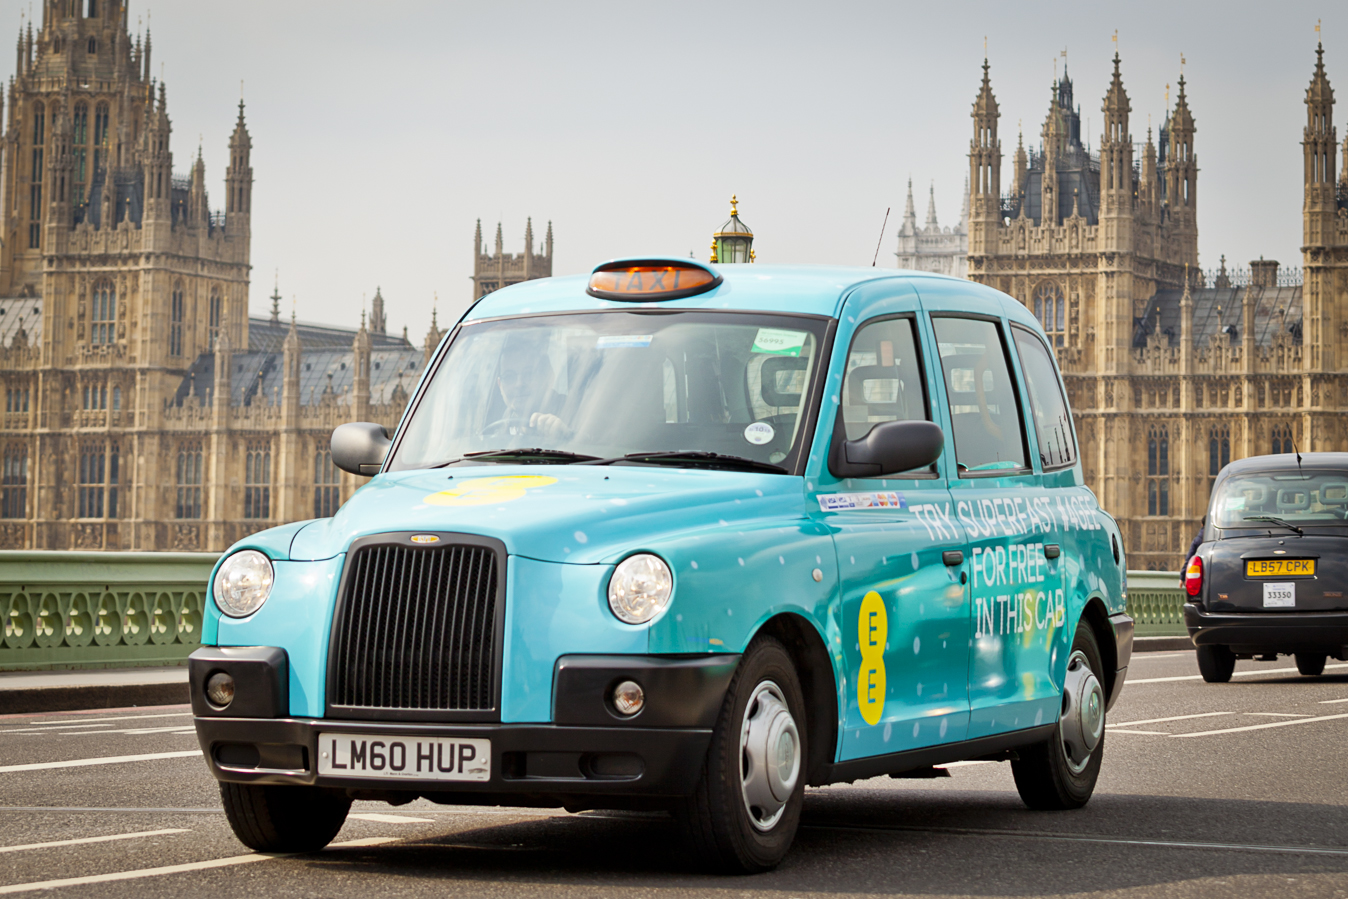 EE launches the UK's first ever fleet of superfast 4G taxis in London and Birmingham